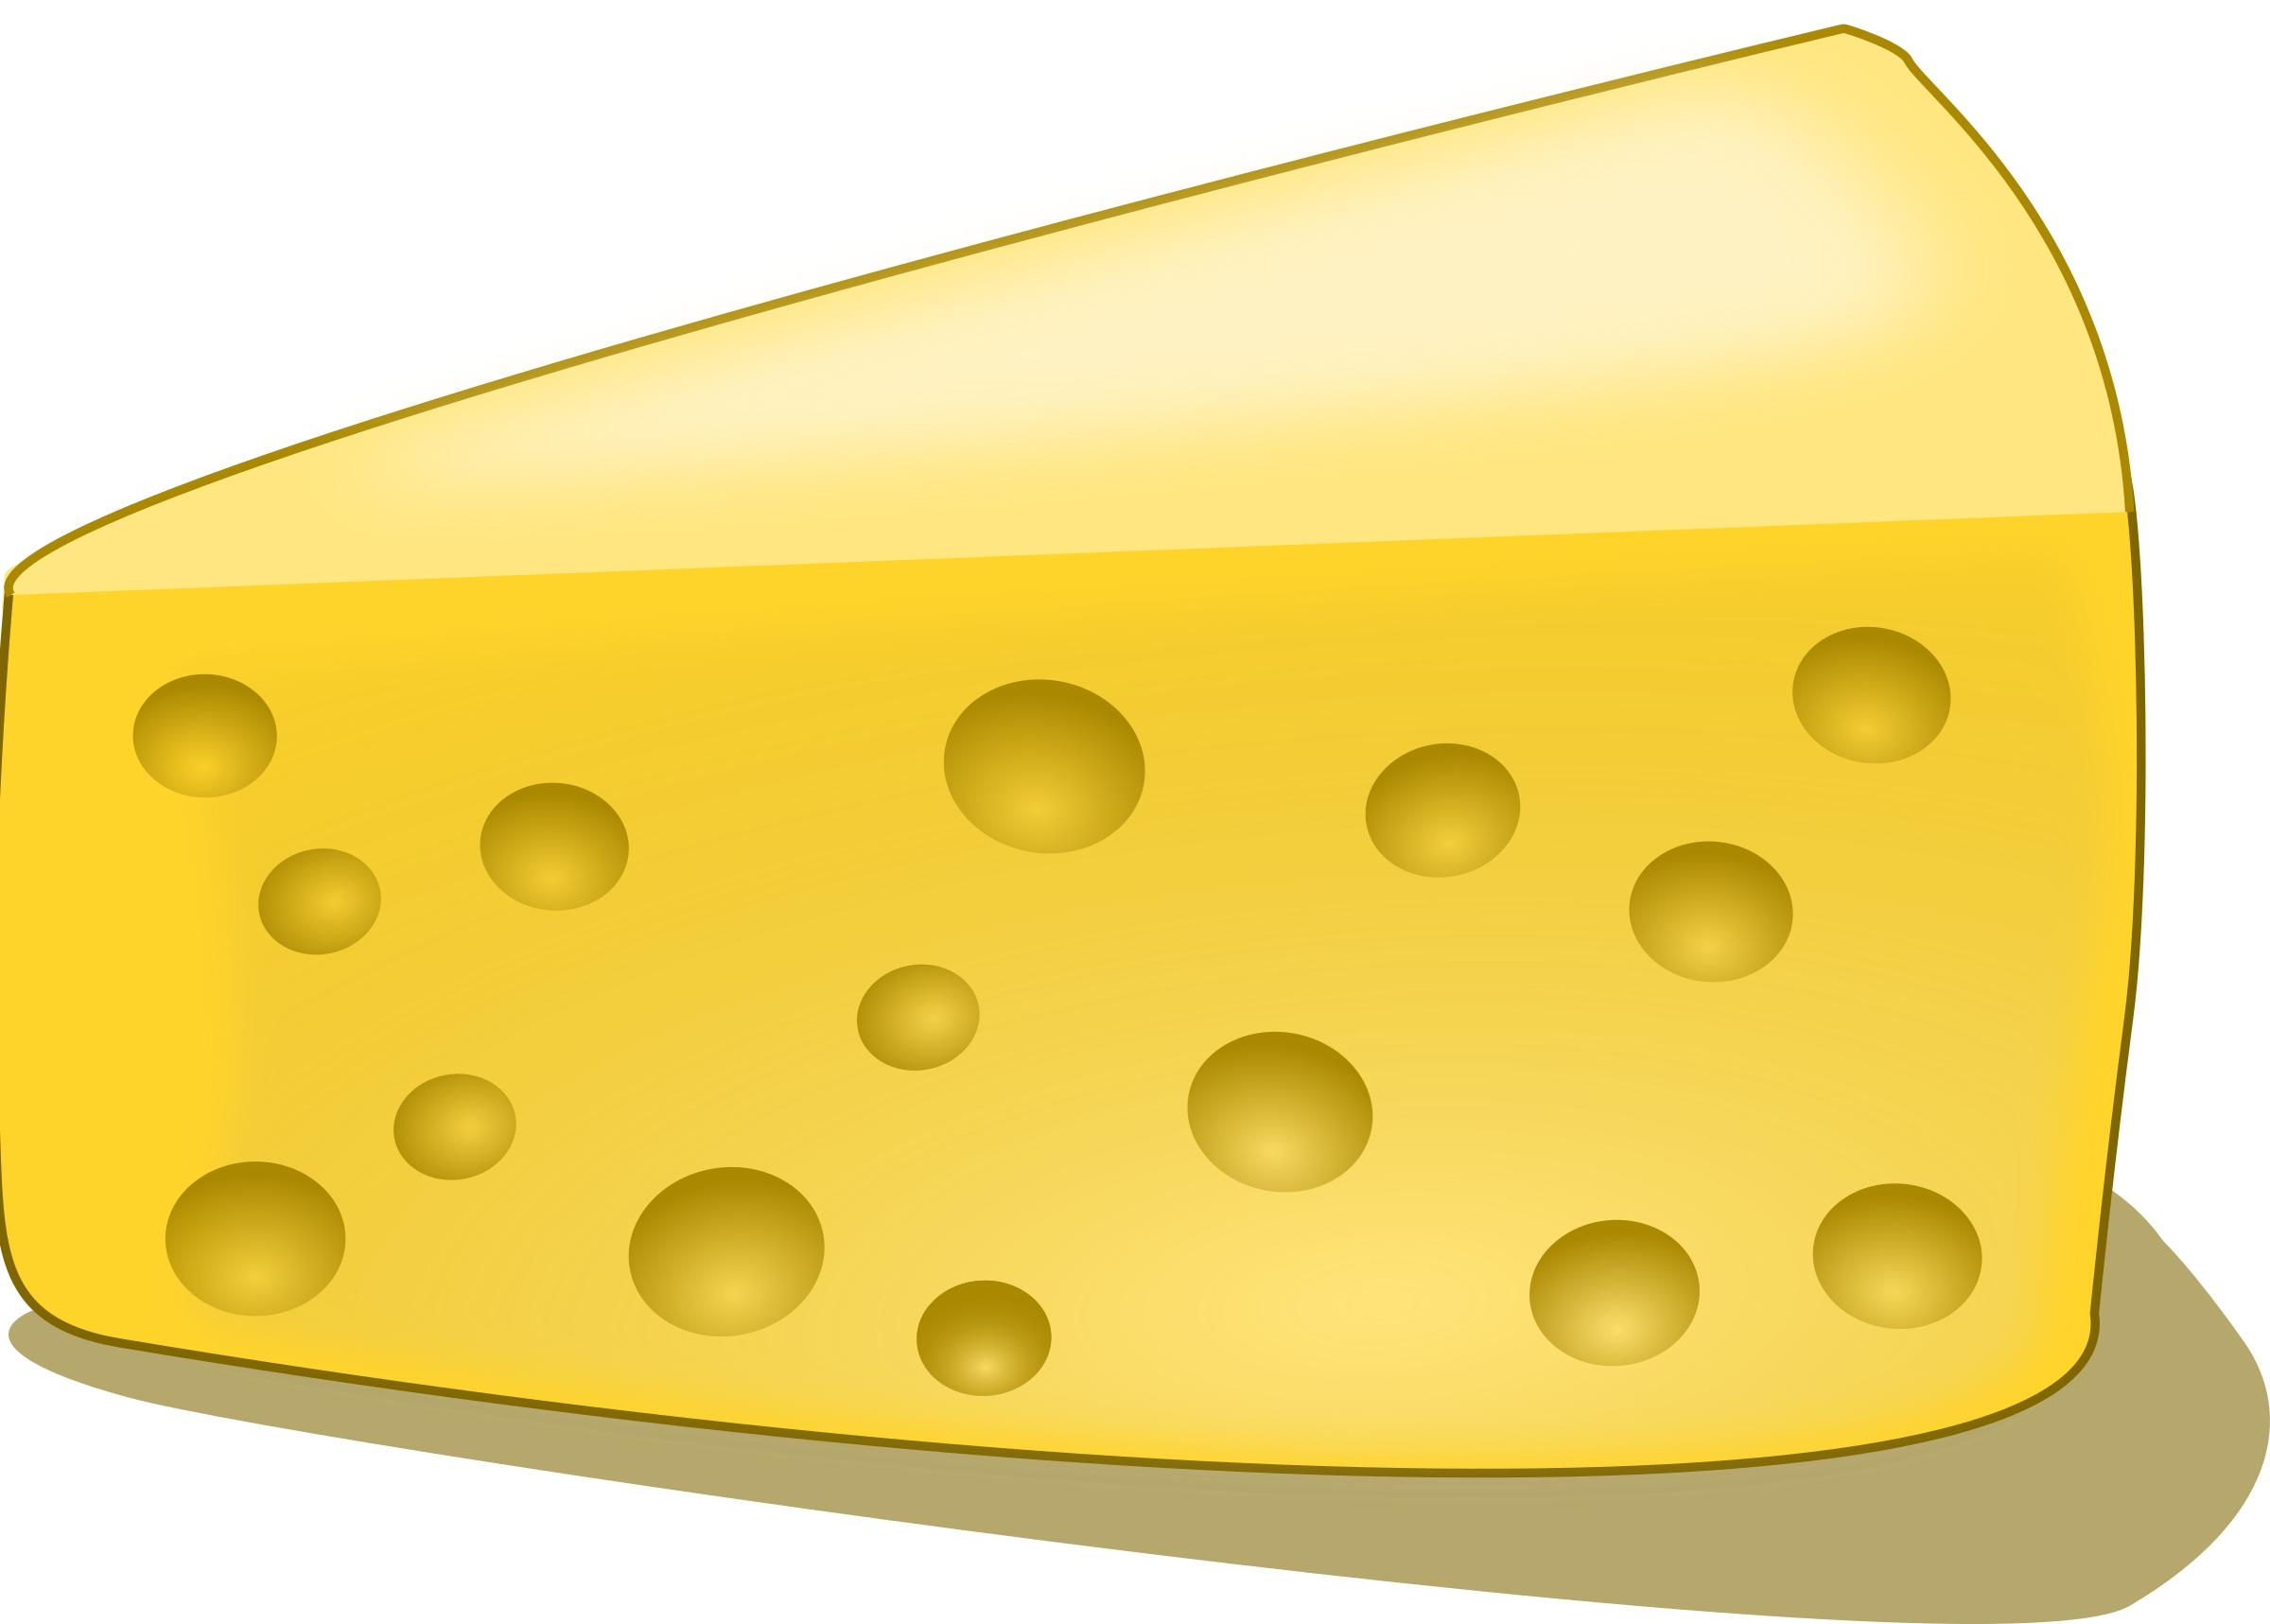 Cheese clipart piece cheese. Of icons png free